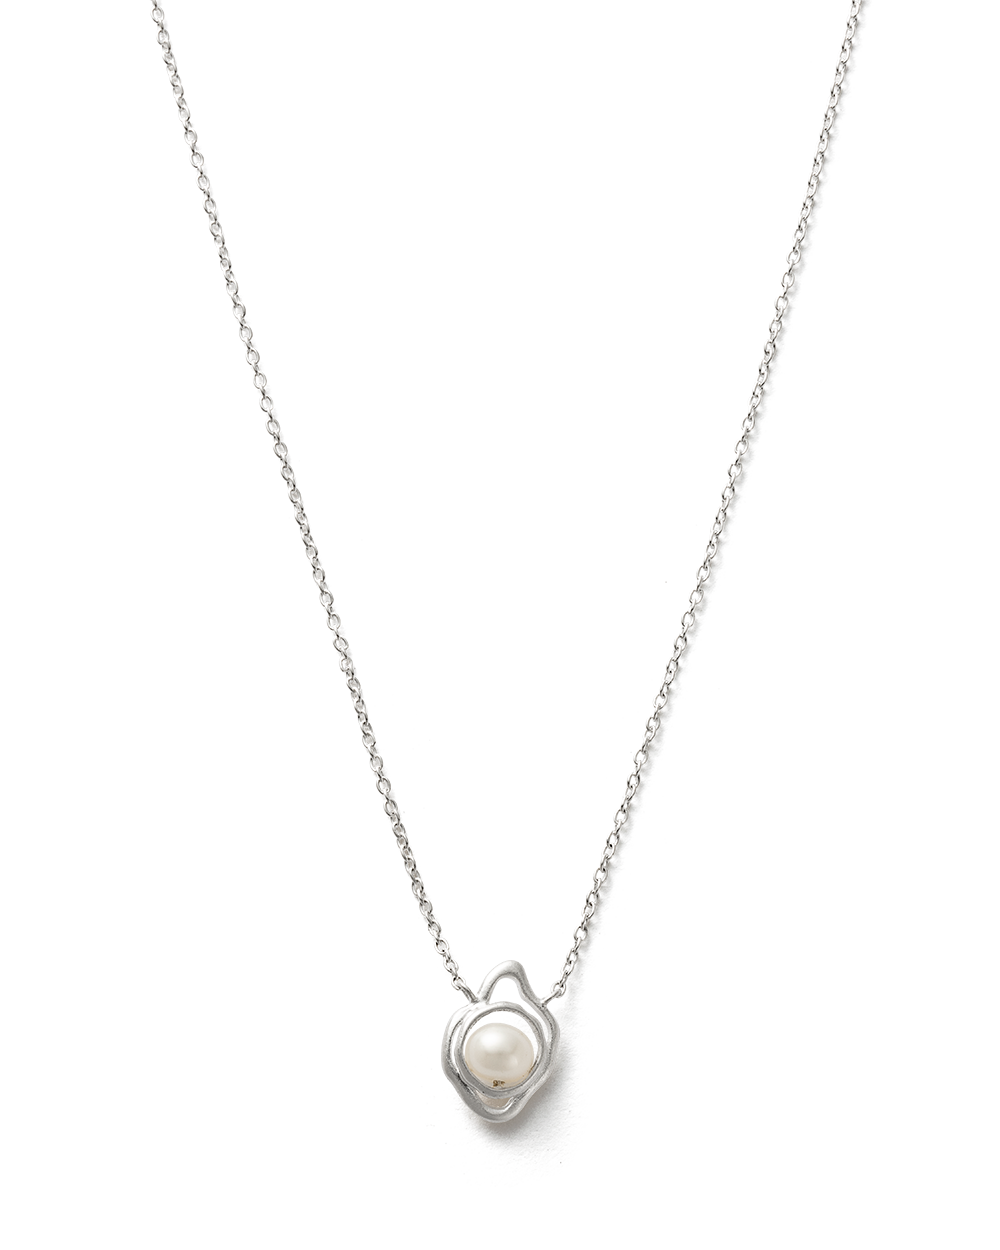 EBB AND FLOW NECKLACE (STERLING SILVER) - FRONT IMAGE